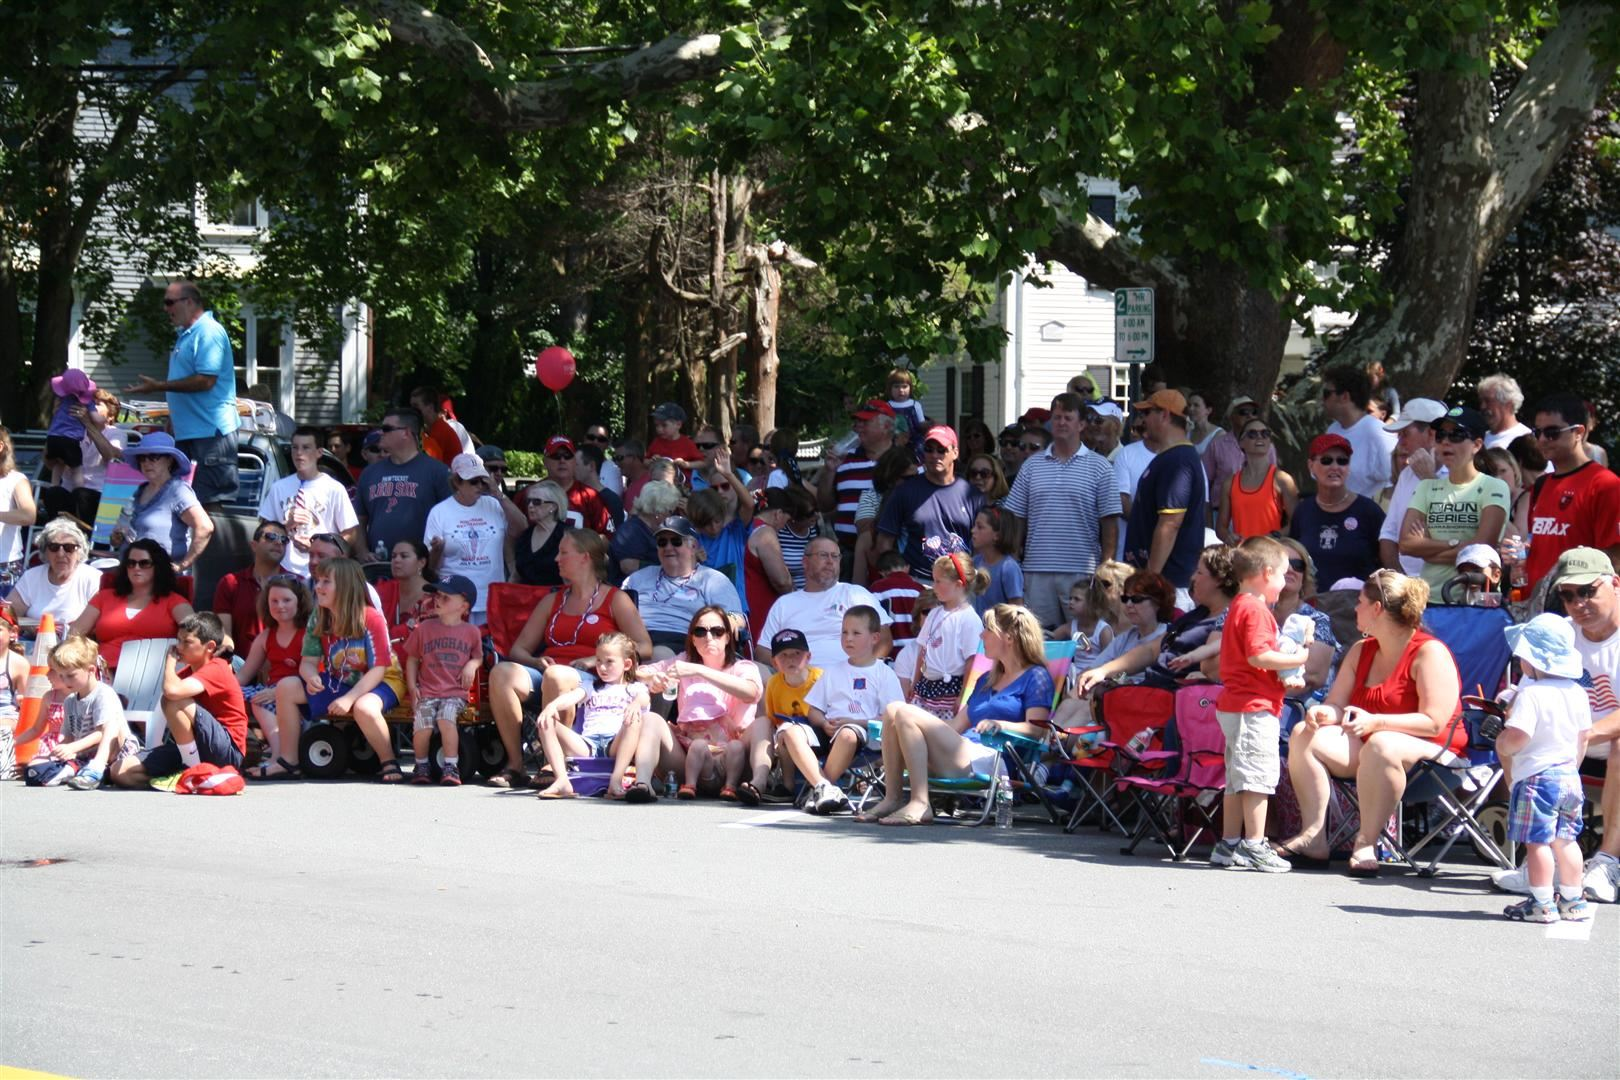 The crowds enjoy the parade!